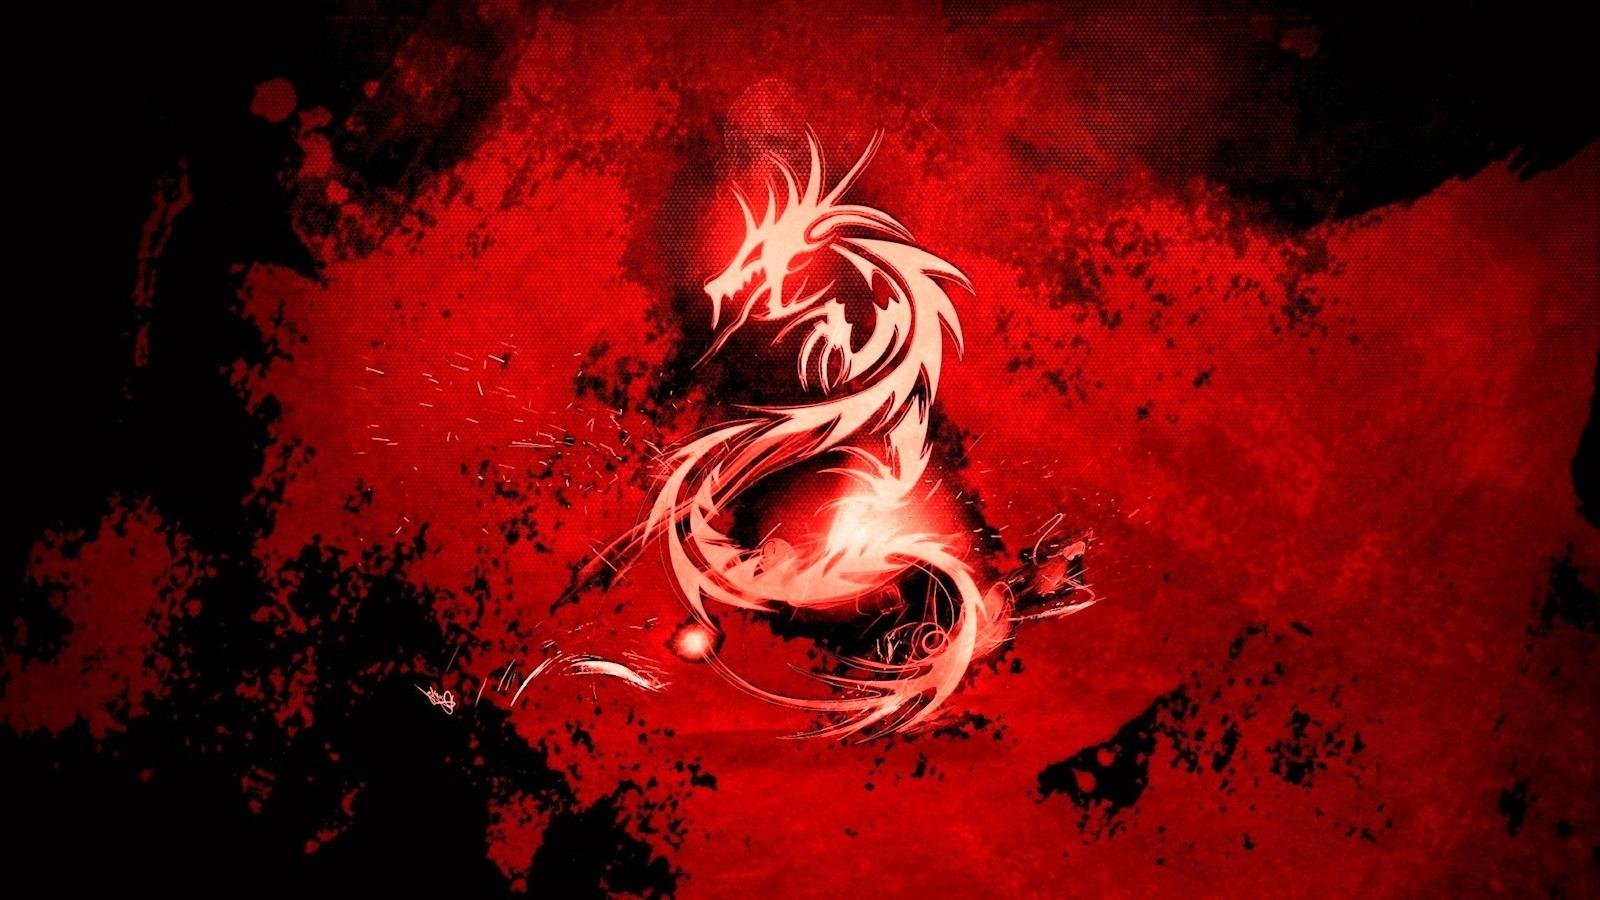 red dragon wallpapers wallpapersafari